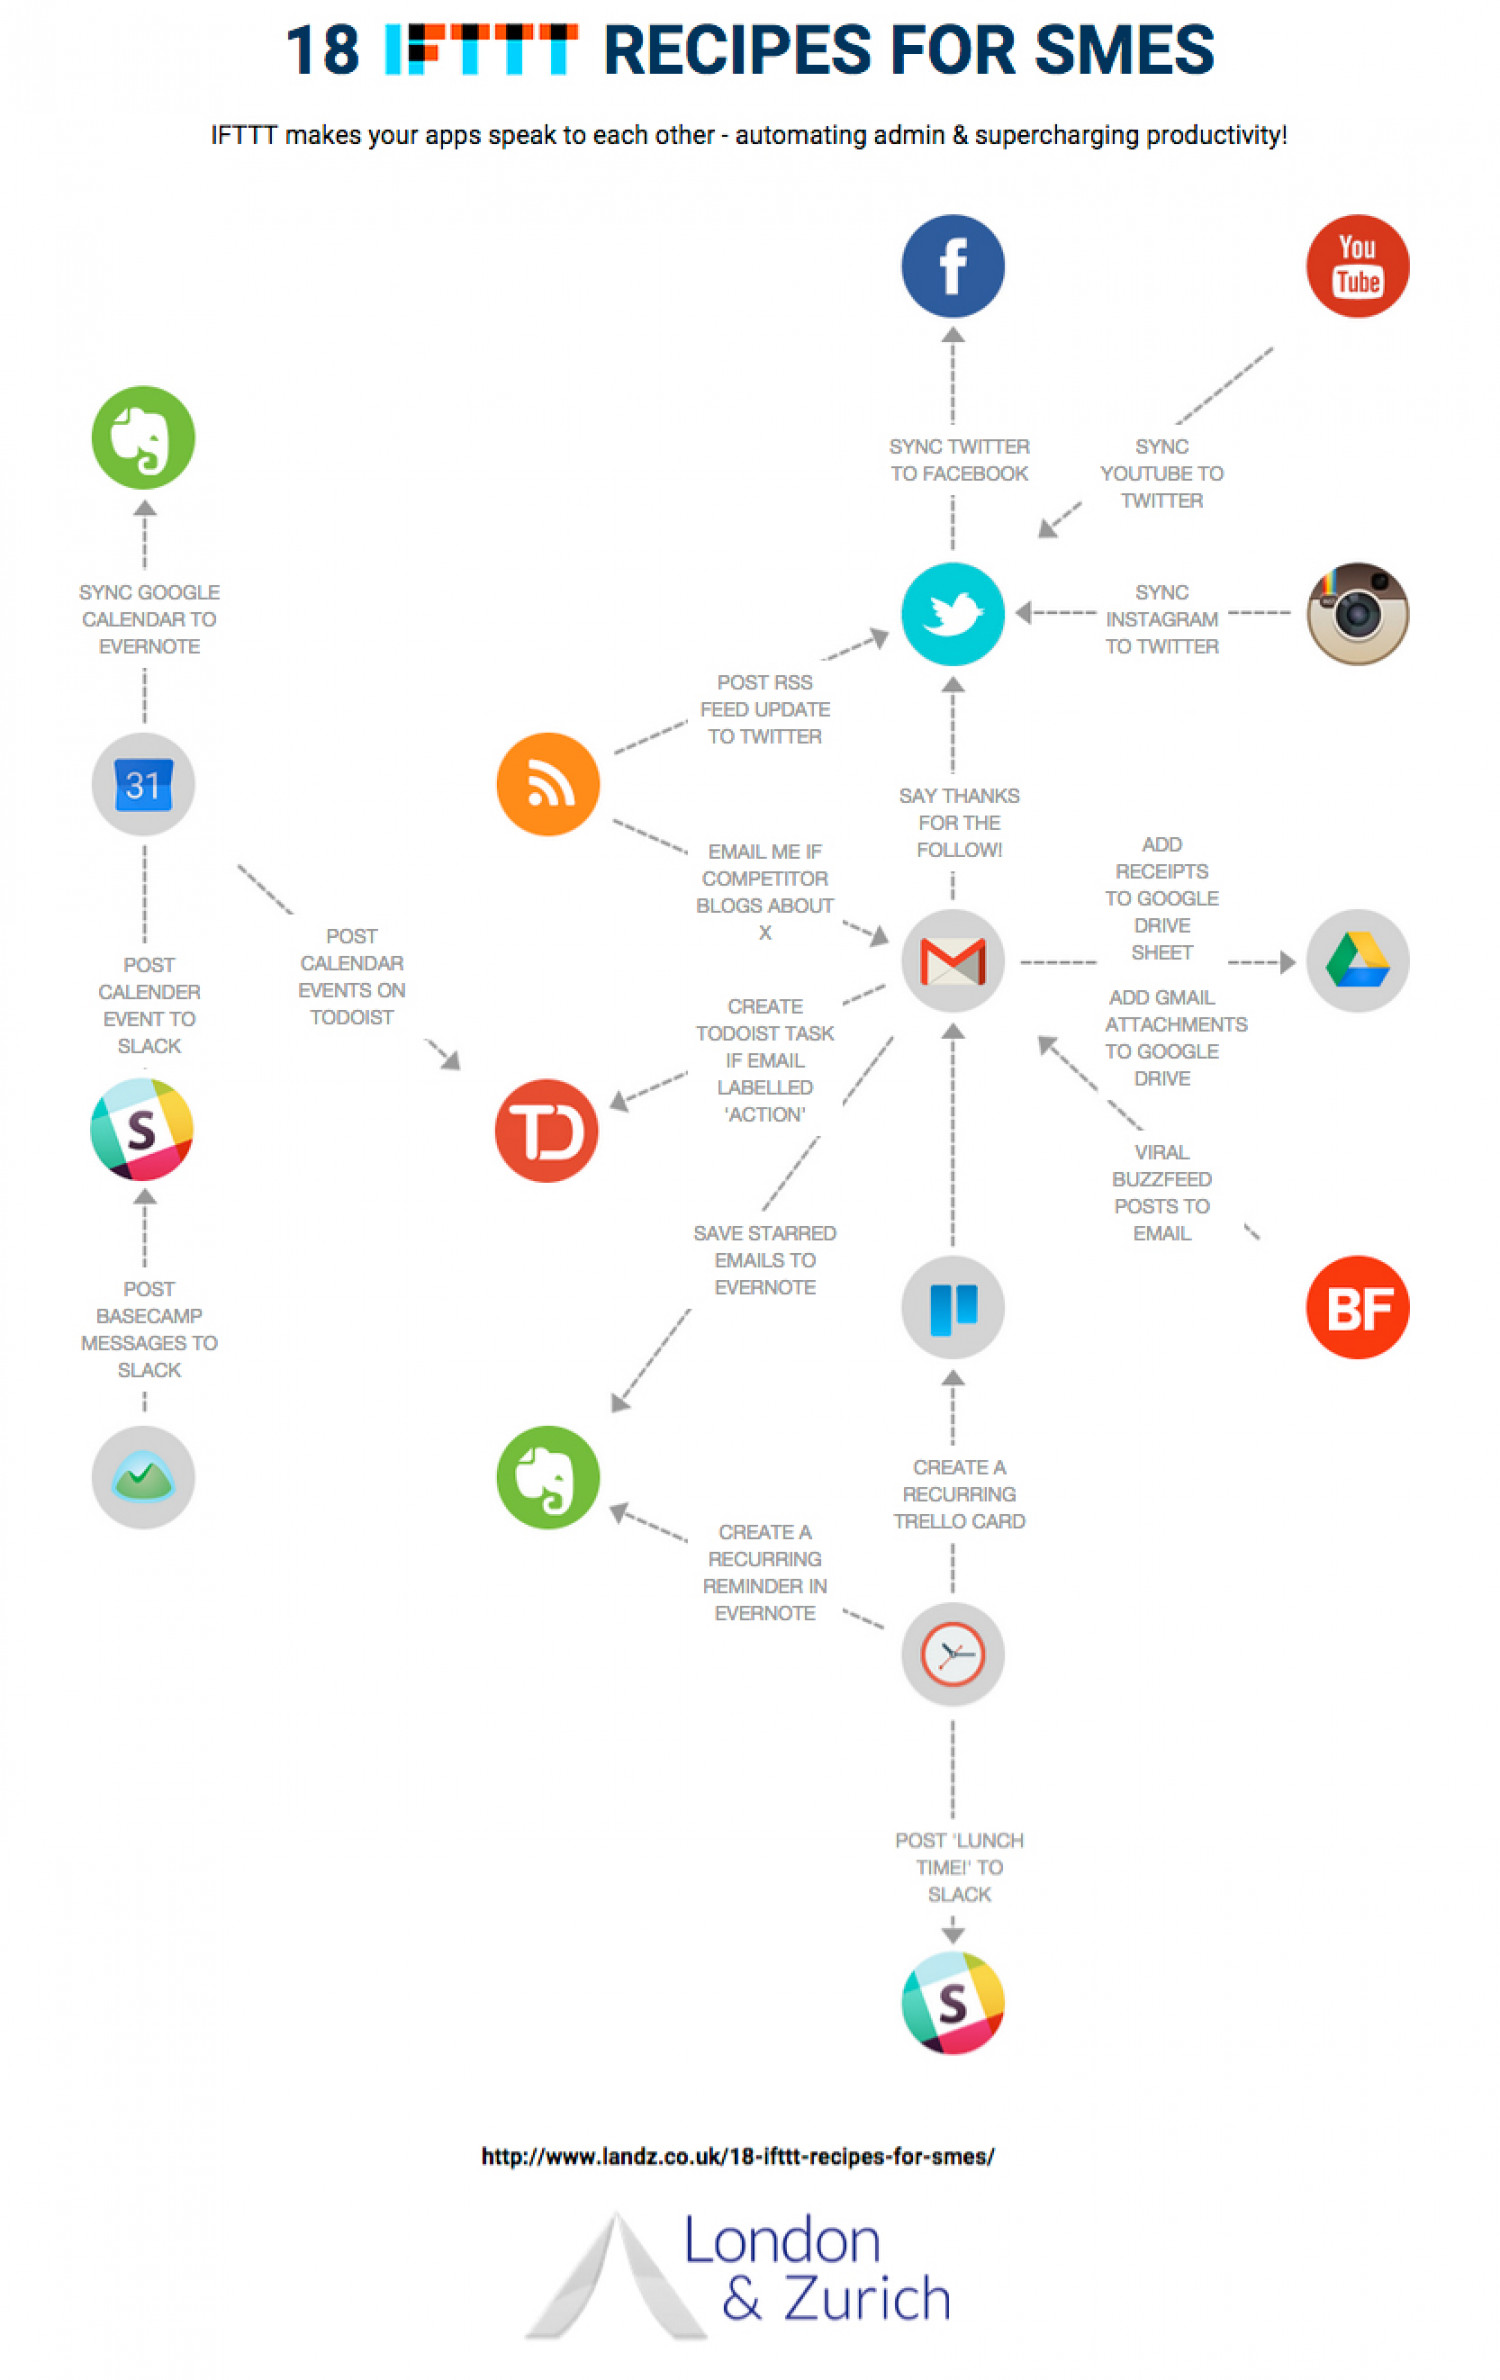 18 IFTTT Recipes for SMEs Infographic